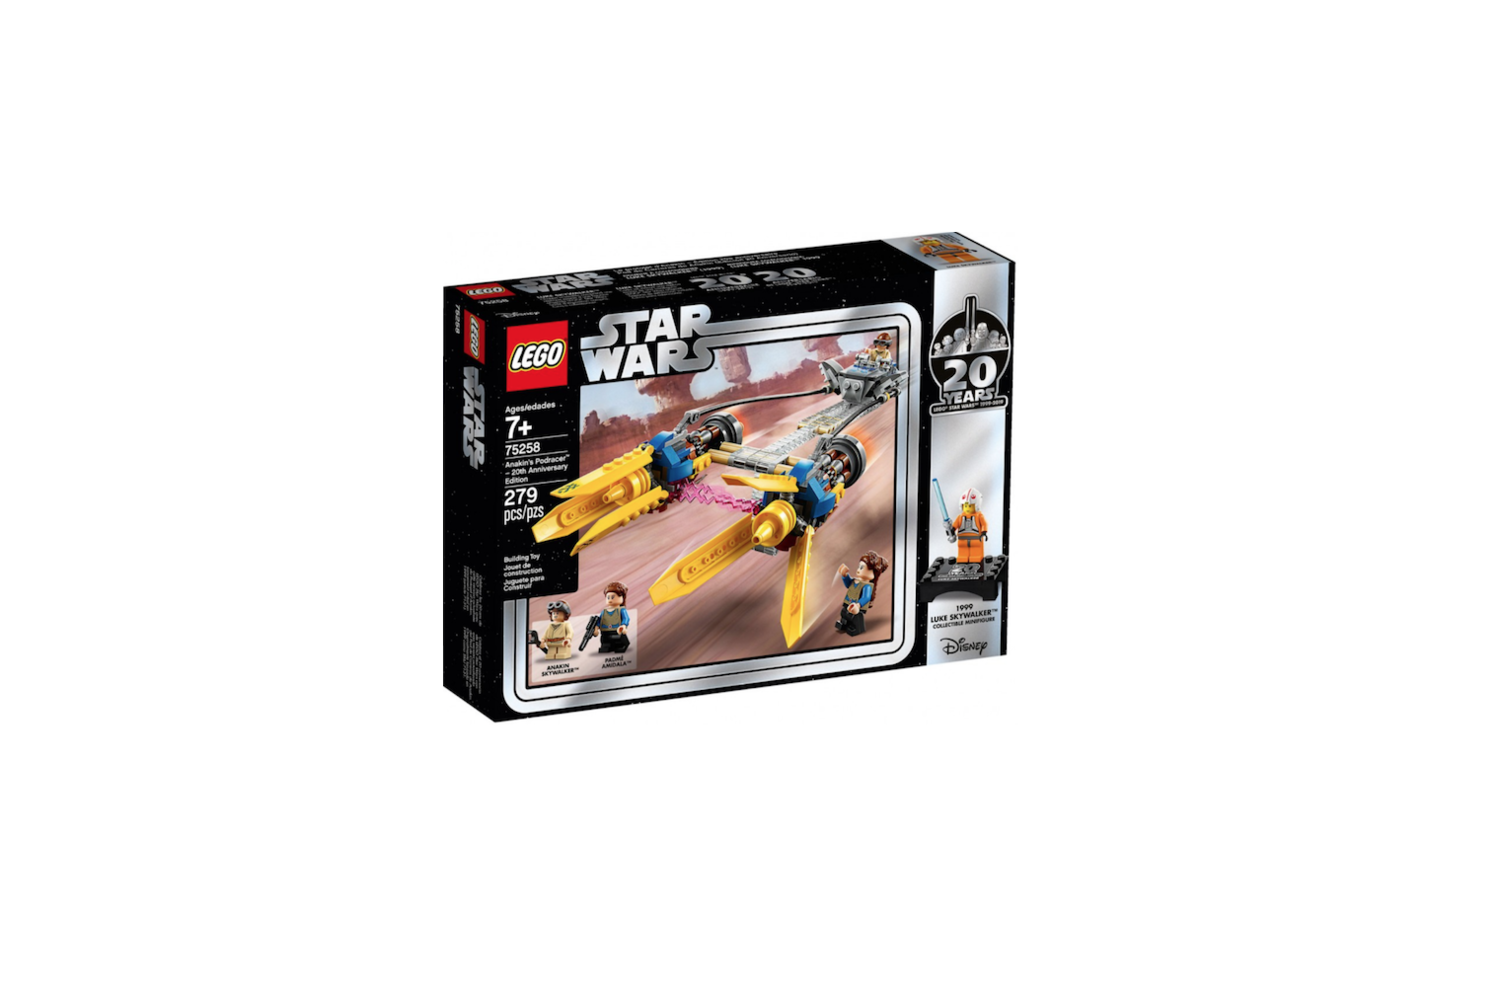 LEGO STAR WARS ANAKIN'S PODRACER 20th ANNIVERSARY EDITION COLLECTOR 75258 JOUET JEU JEUX ITEM 6251728 CONSTRUCTION ENFANT NOEL NEUF 5702016370713 COMASOUND KARTEL